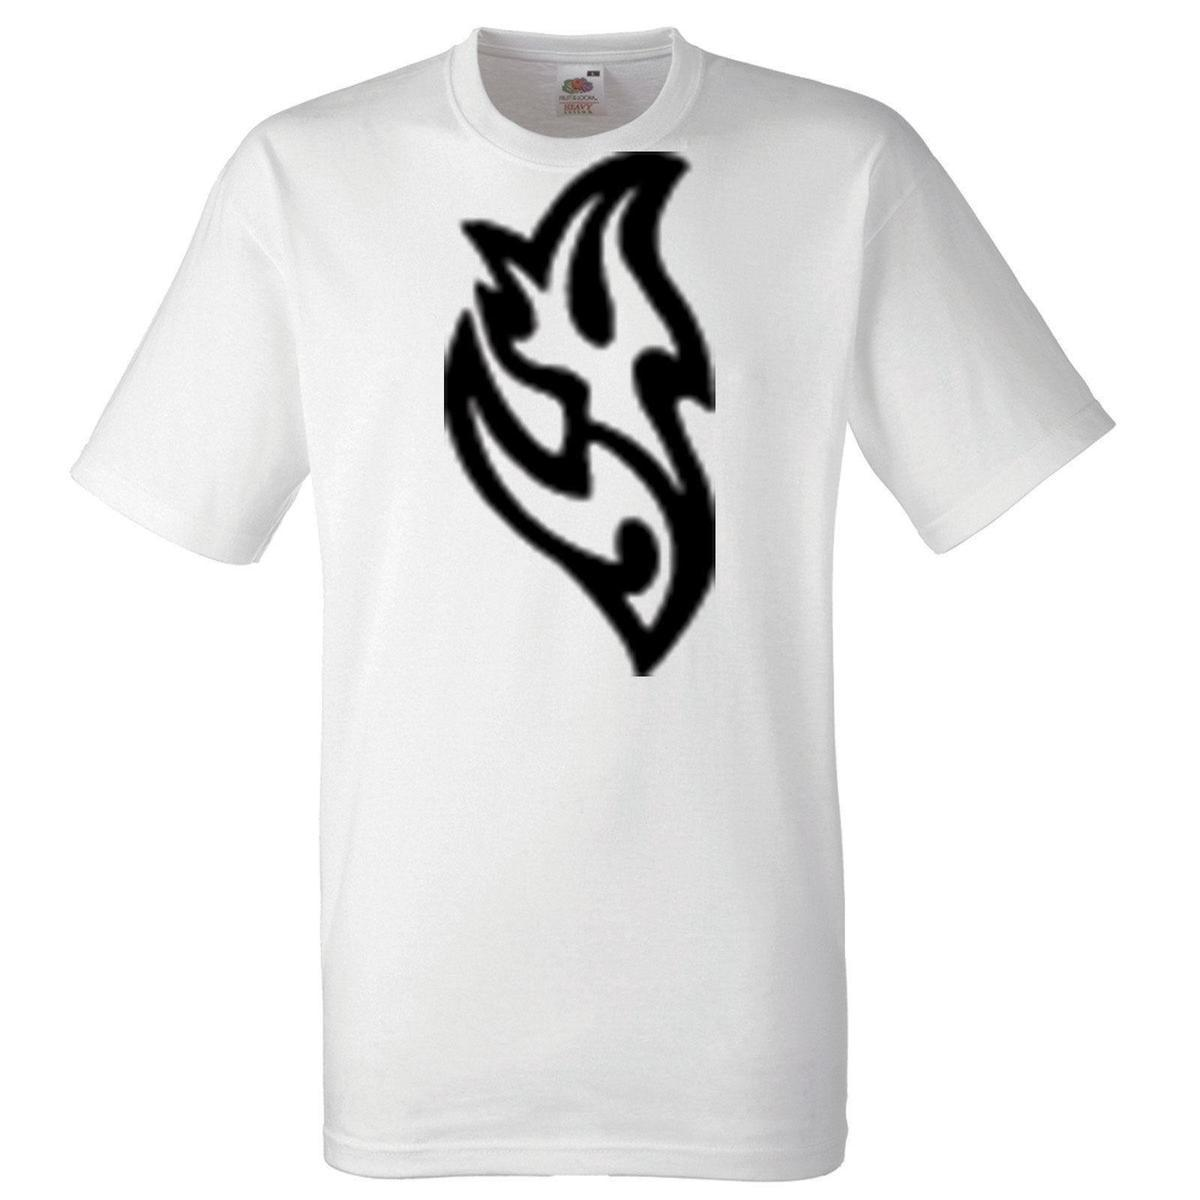 33a347f3 TRIBAL T SHIRT DESIGN SERIES TATTOO STYLE TEE WHITE SHIRT HIPSTER 2dis443  Order T Shirts Quality T Shirts From Lijian19, $12.08  DHgate.Com